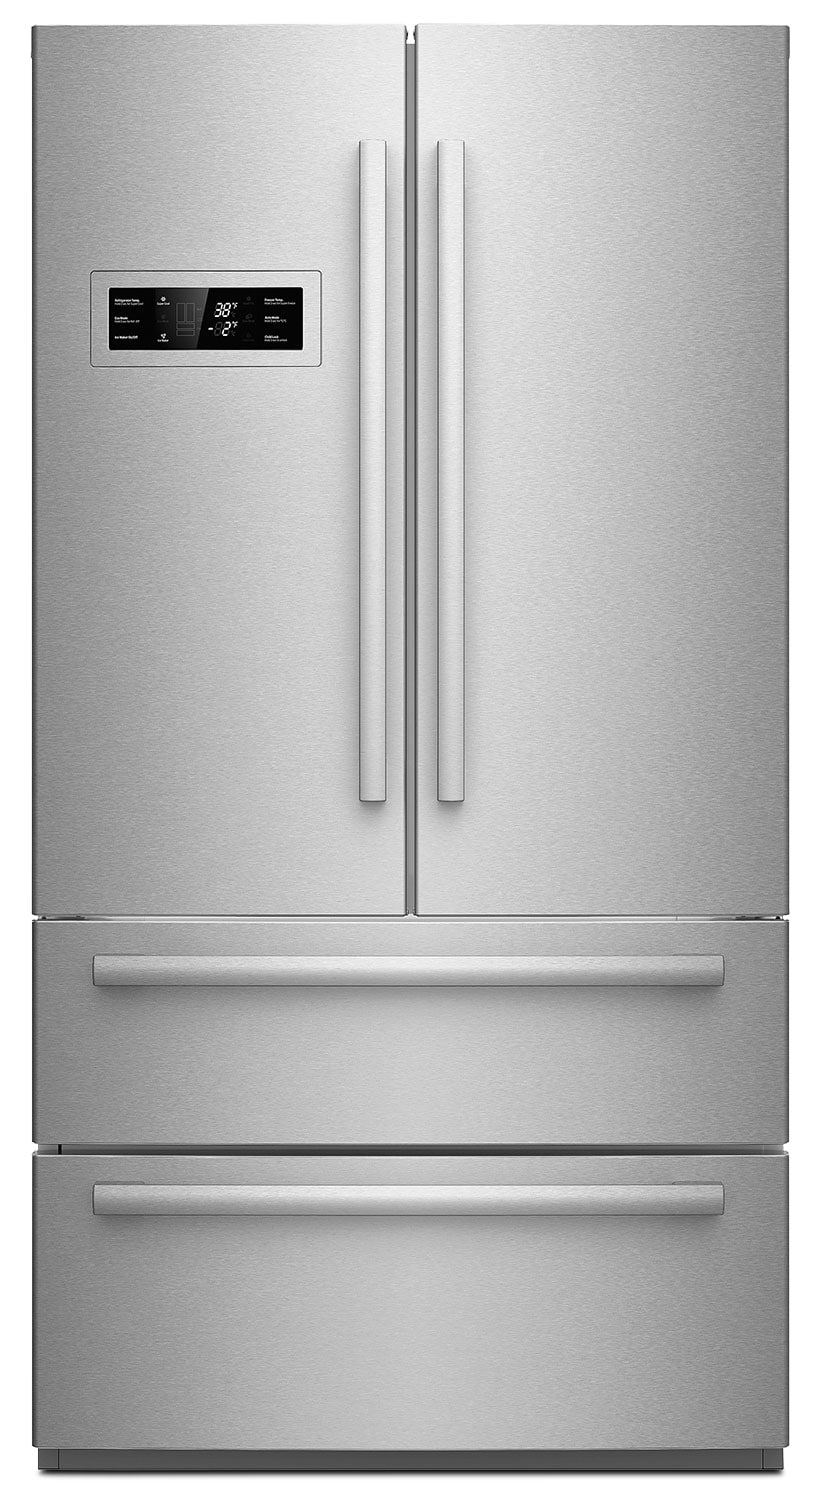 Refrigerators and Freezers - Bosch 800 Series 20.7 Cu. Ft. French-Door Refrigerator – B21CL80SNS